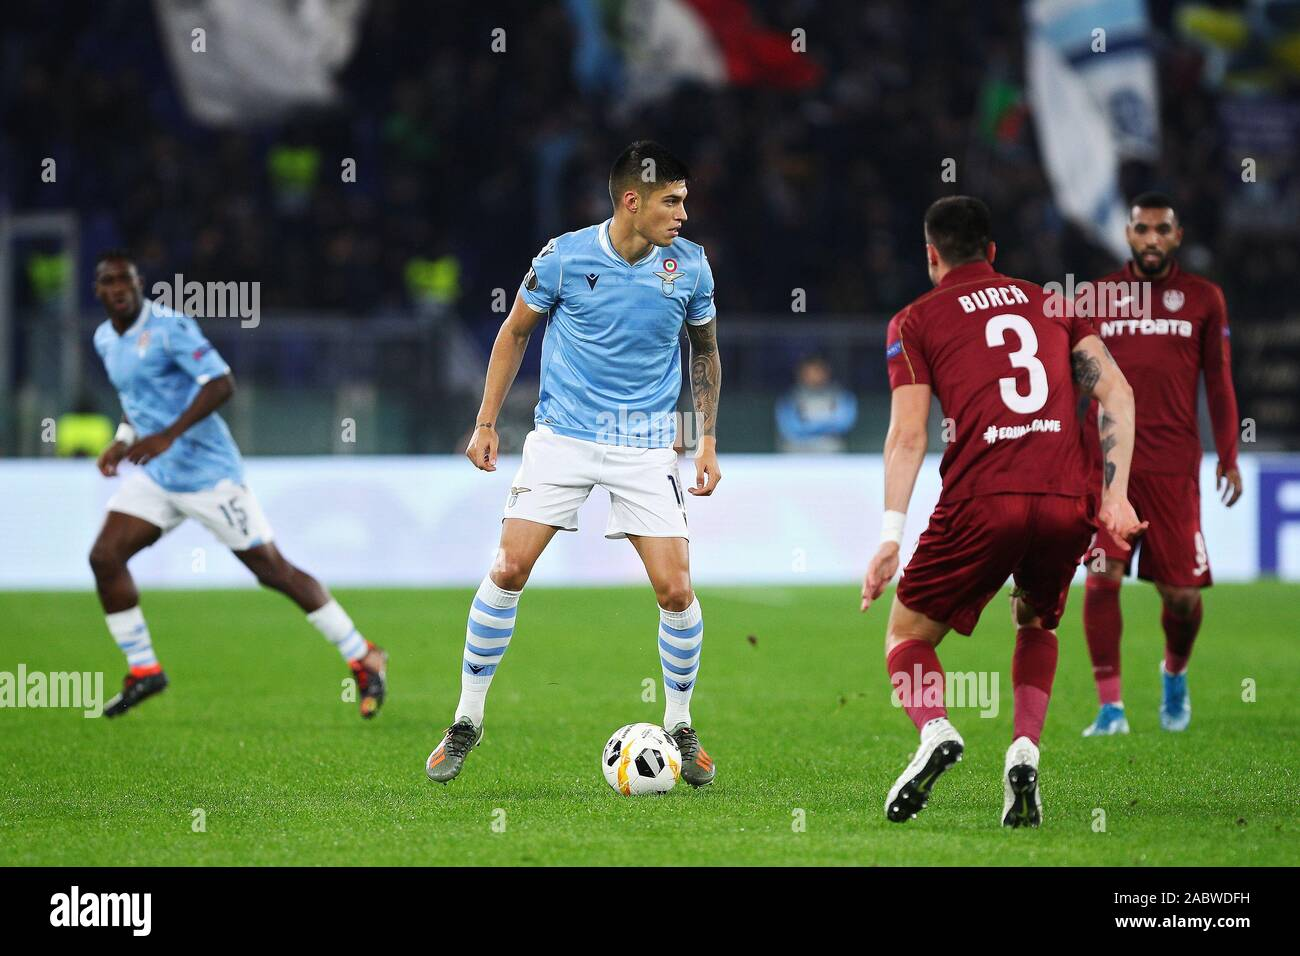 Joaquin Correa of Lazio in action during the UEFA Europa League, Group E football match between SS Lazio and CFR Cluj on November 28, 2019 at Stadio Olimpico in Rome, Italy - Photo Federico Proietti/ESPA-Images Stock Photo